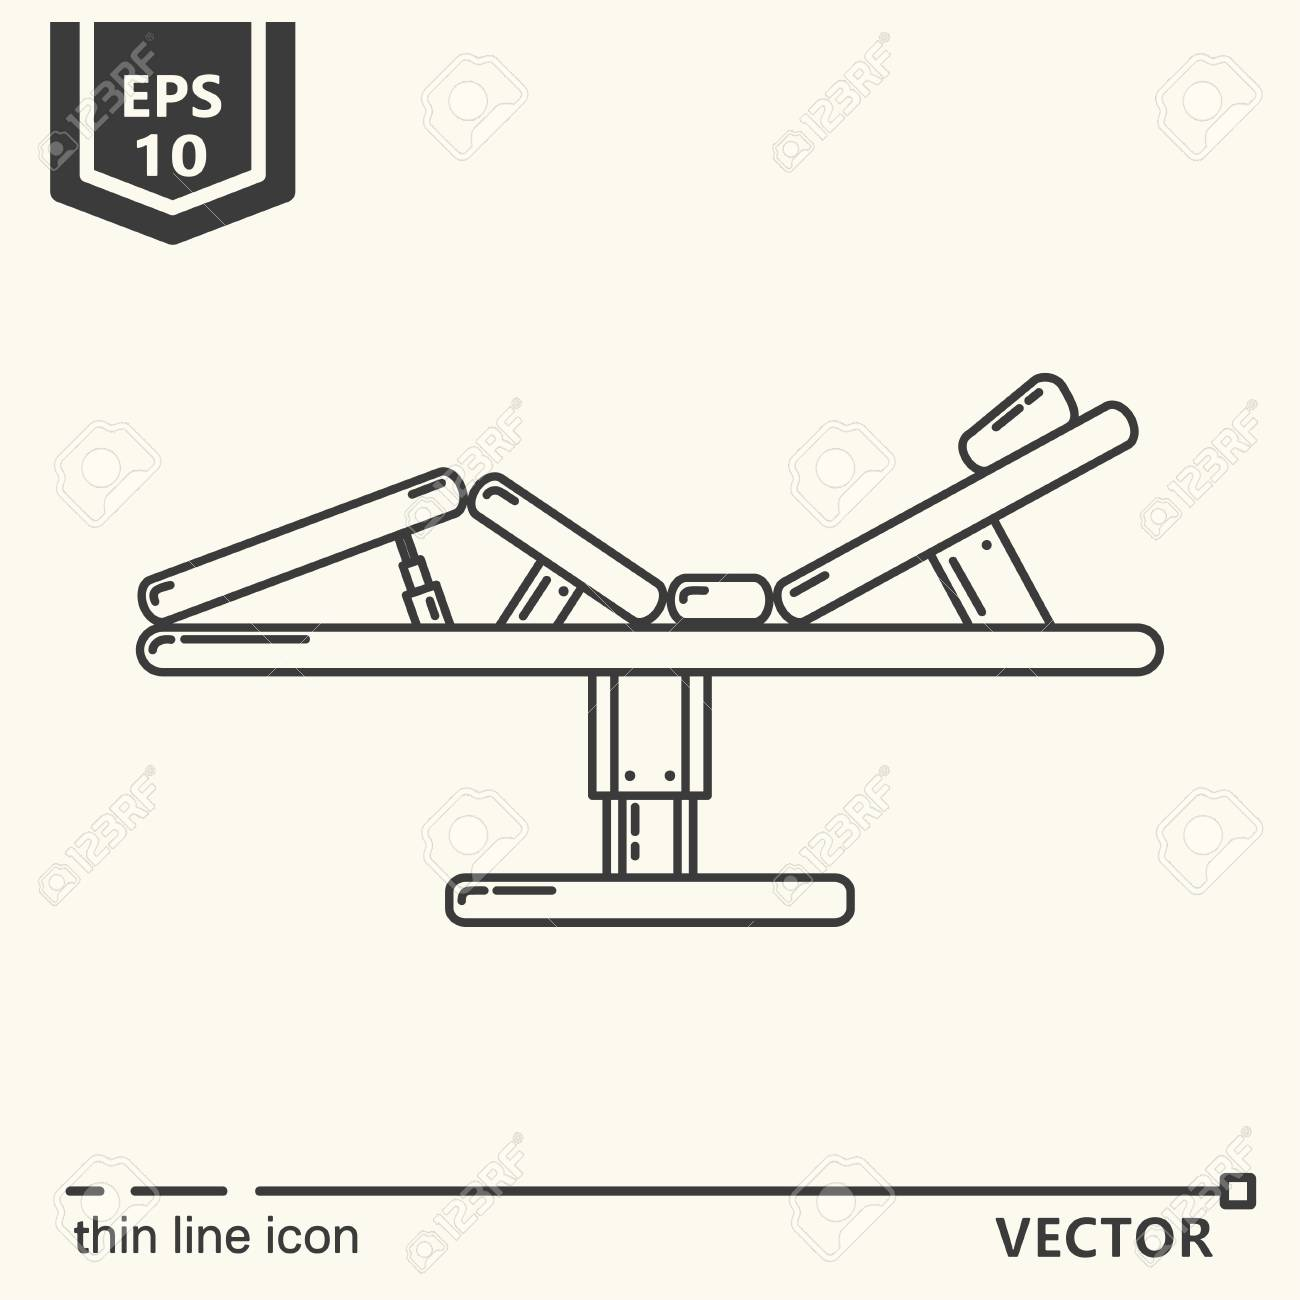 thin line icon massage massage table eps 10 isolated object Drawing Massage Chart Image thin line icon massage massage table eps 10 isolated object stock vector 81296386